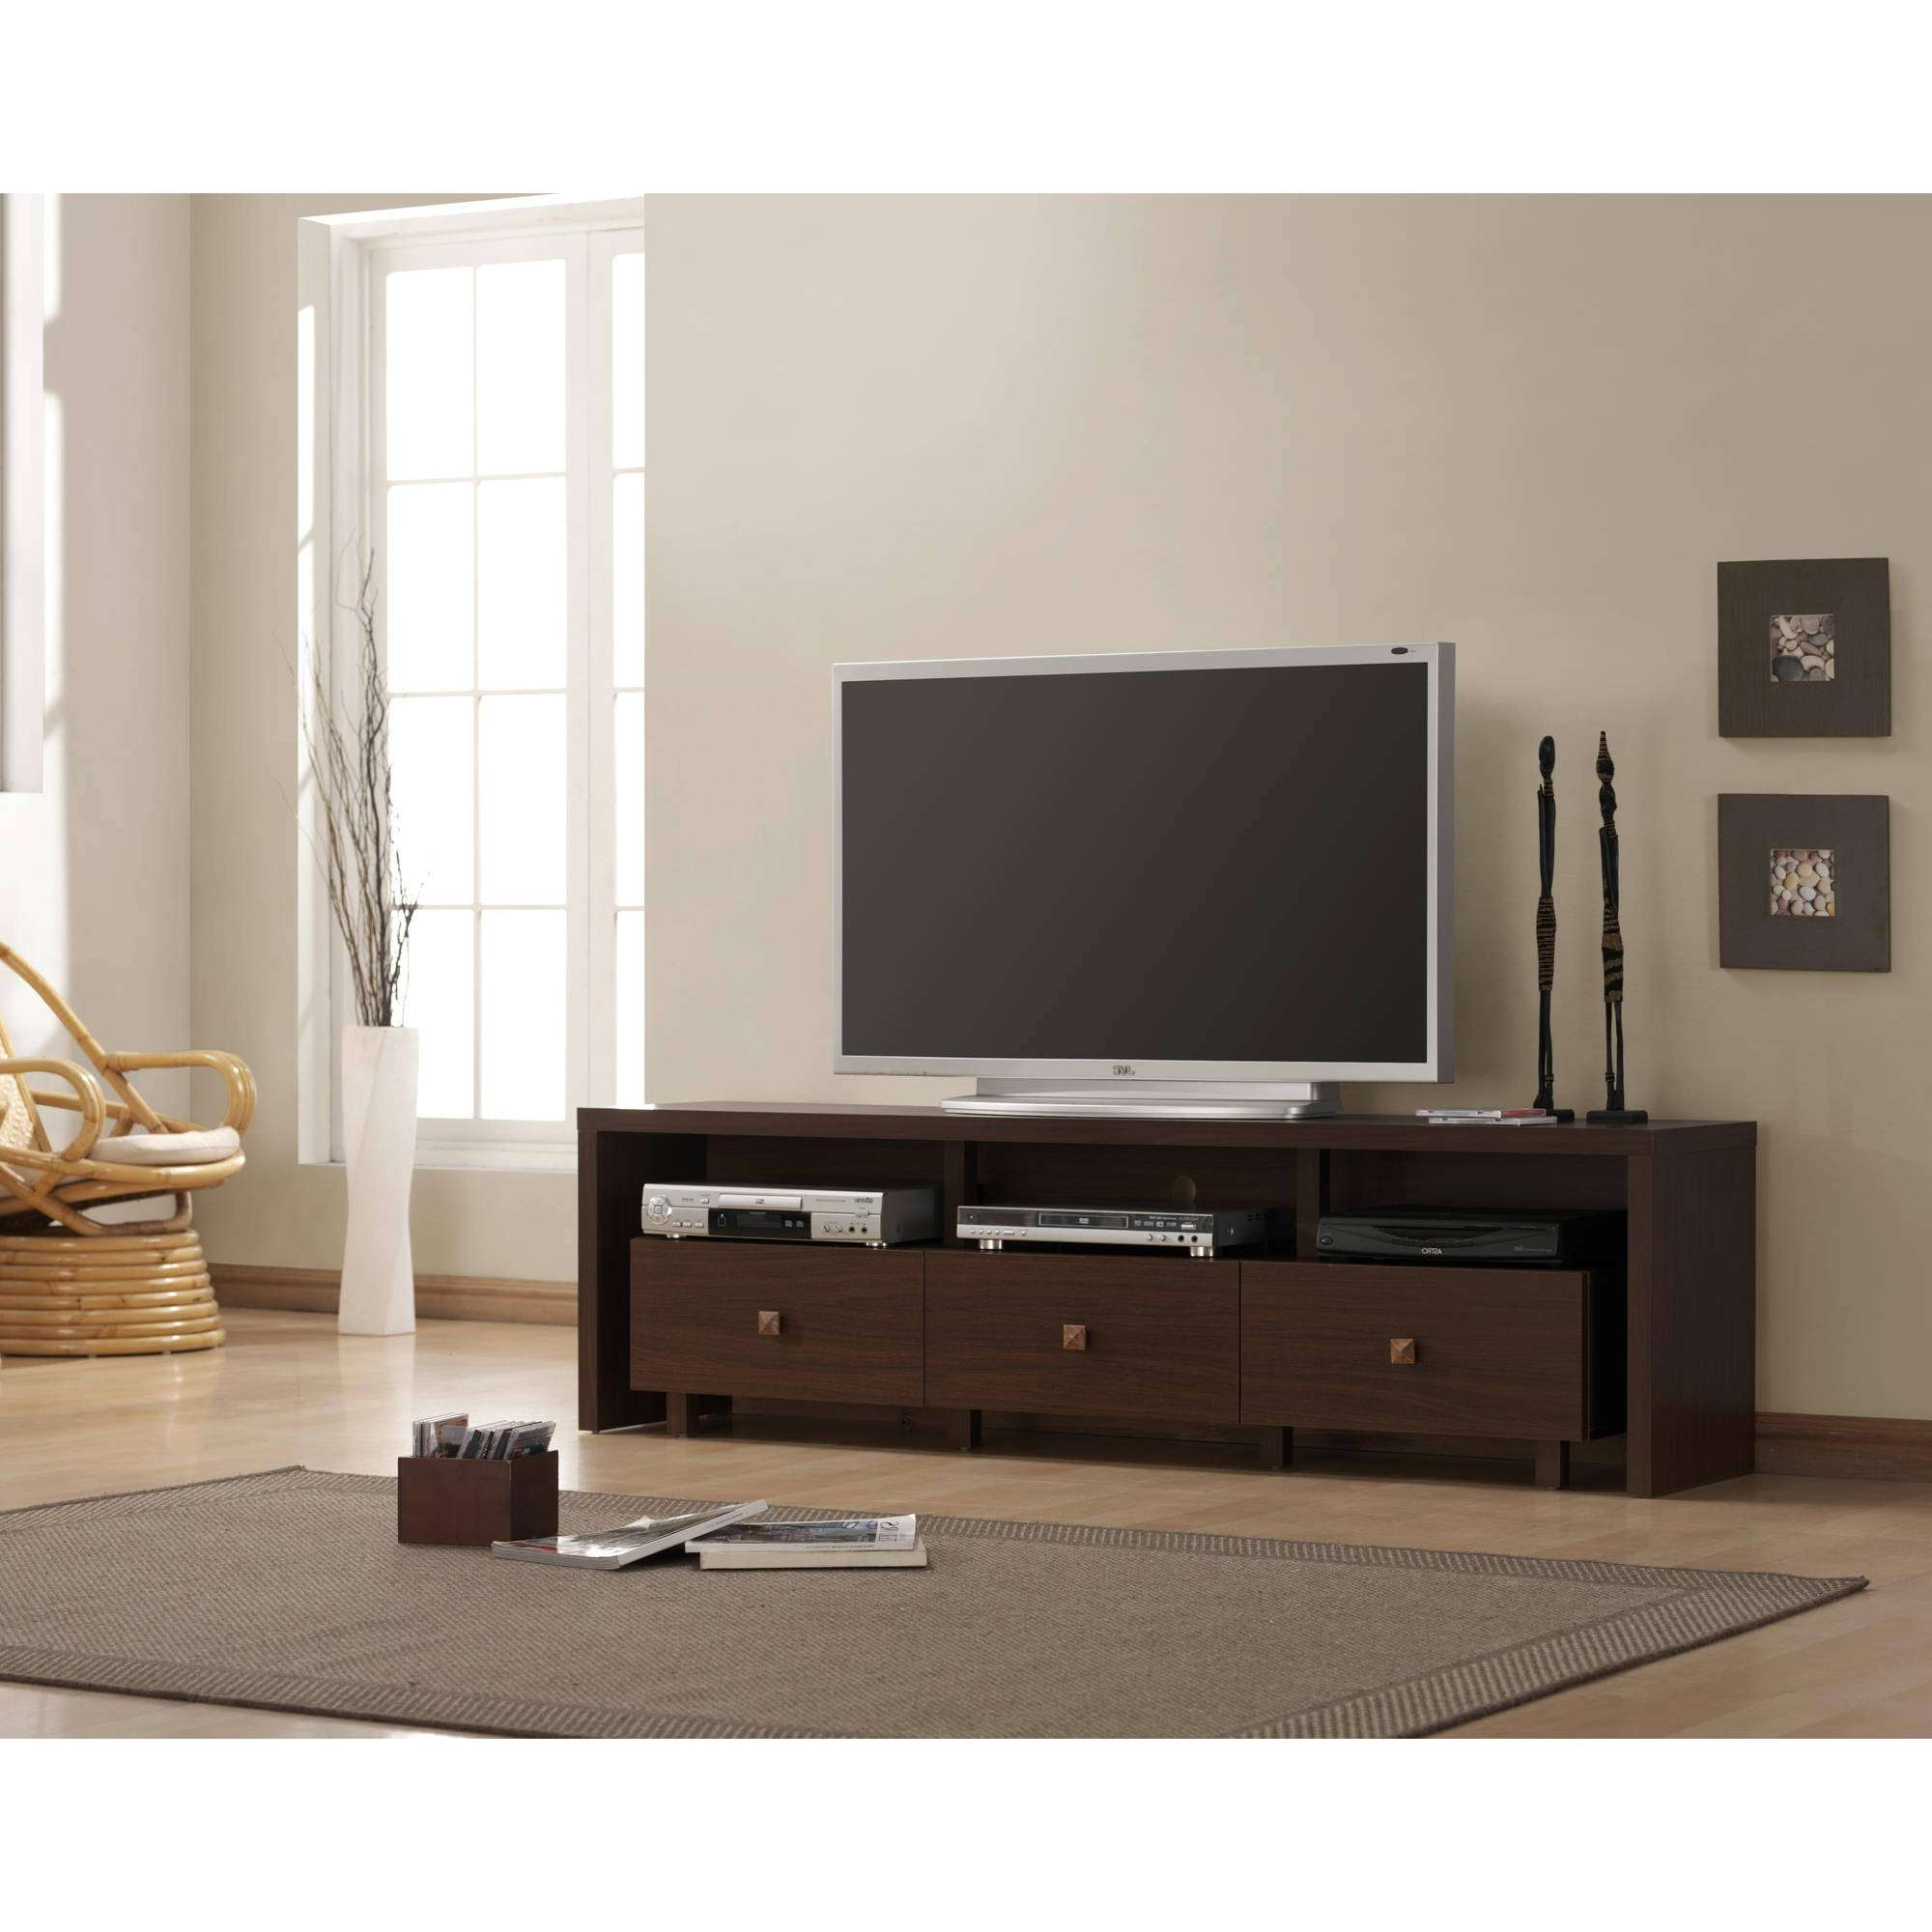 Reputable More Information Newton Tv Stand Home Entertainment From With Regard To Modern Tv Stands For 60 Inch Tvs (View 4 of 15)